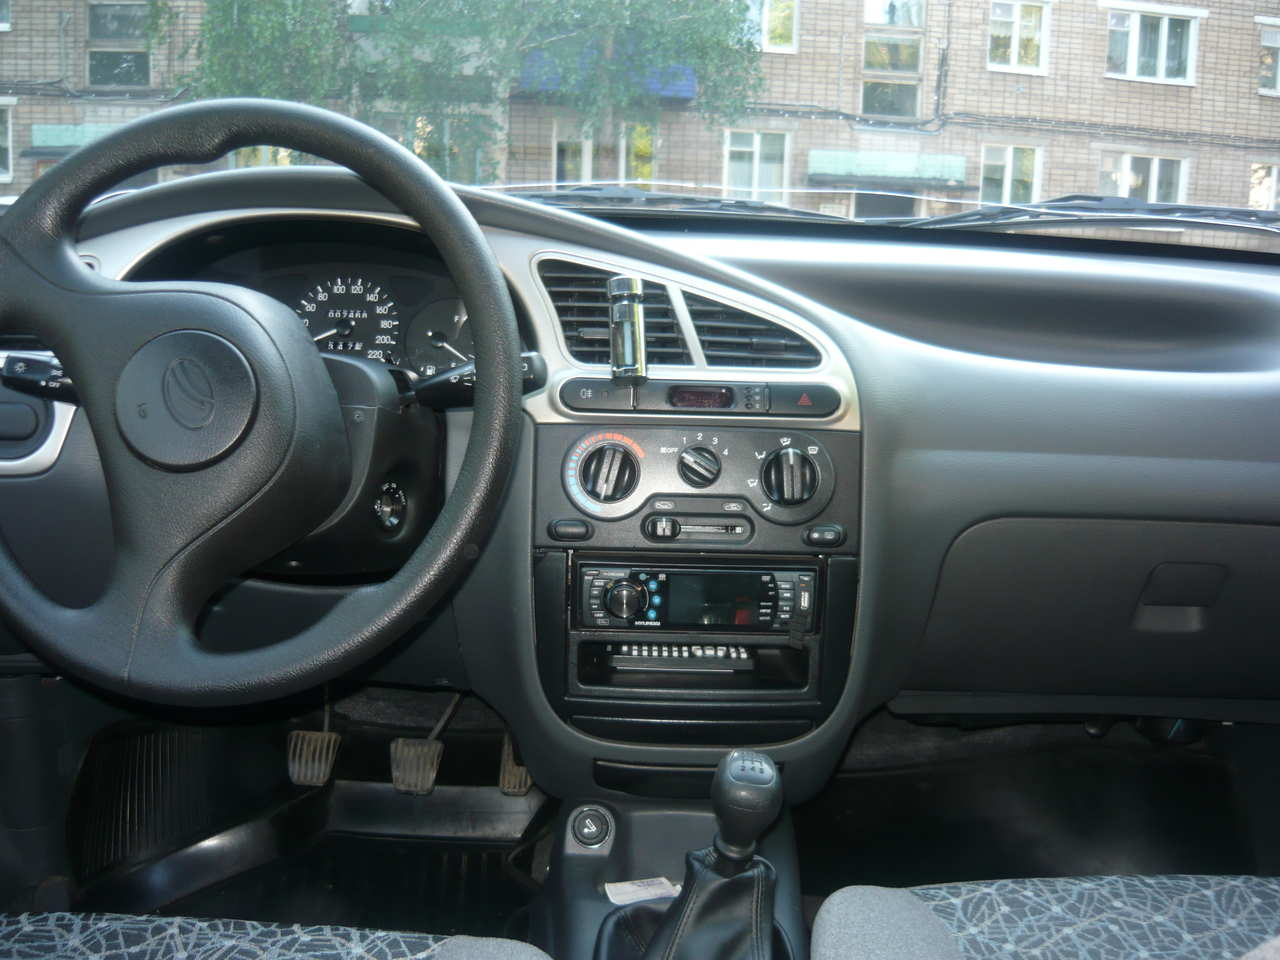 Daewoo Matiz Manual Lanos Review And Photos Interior